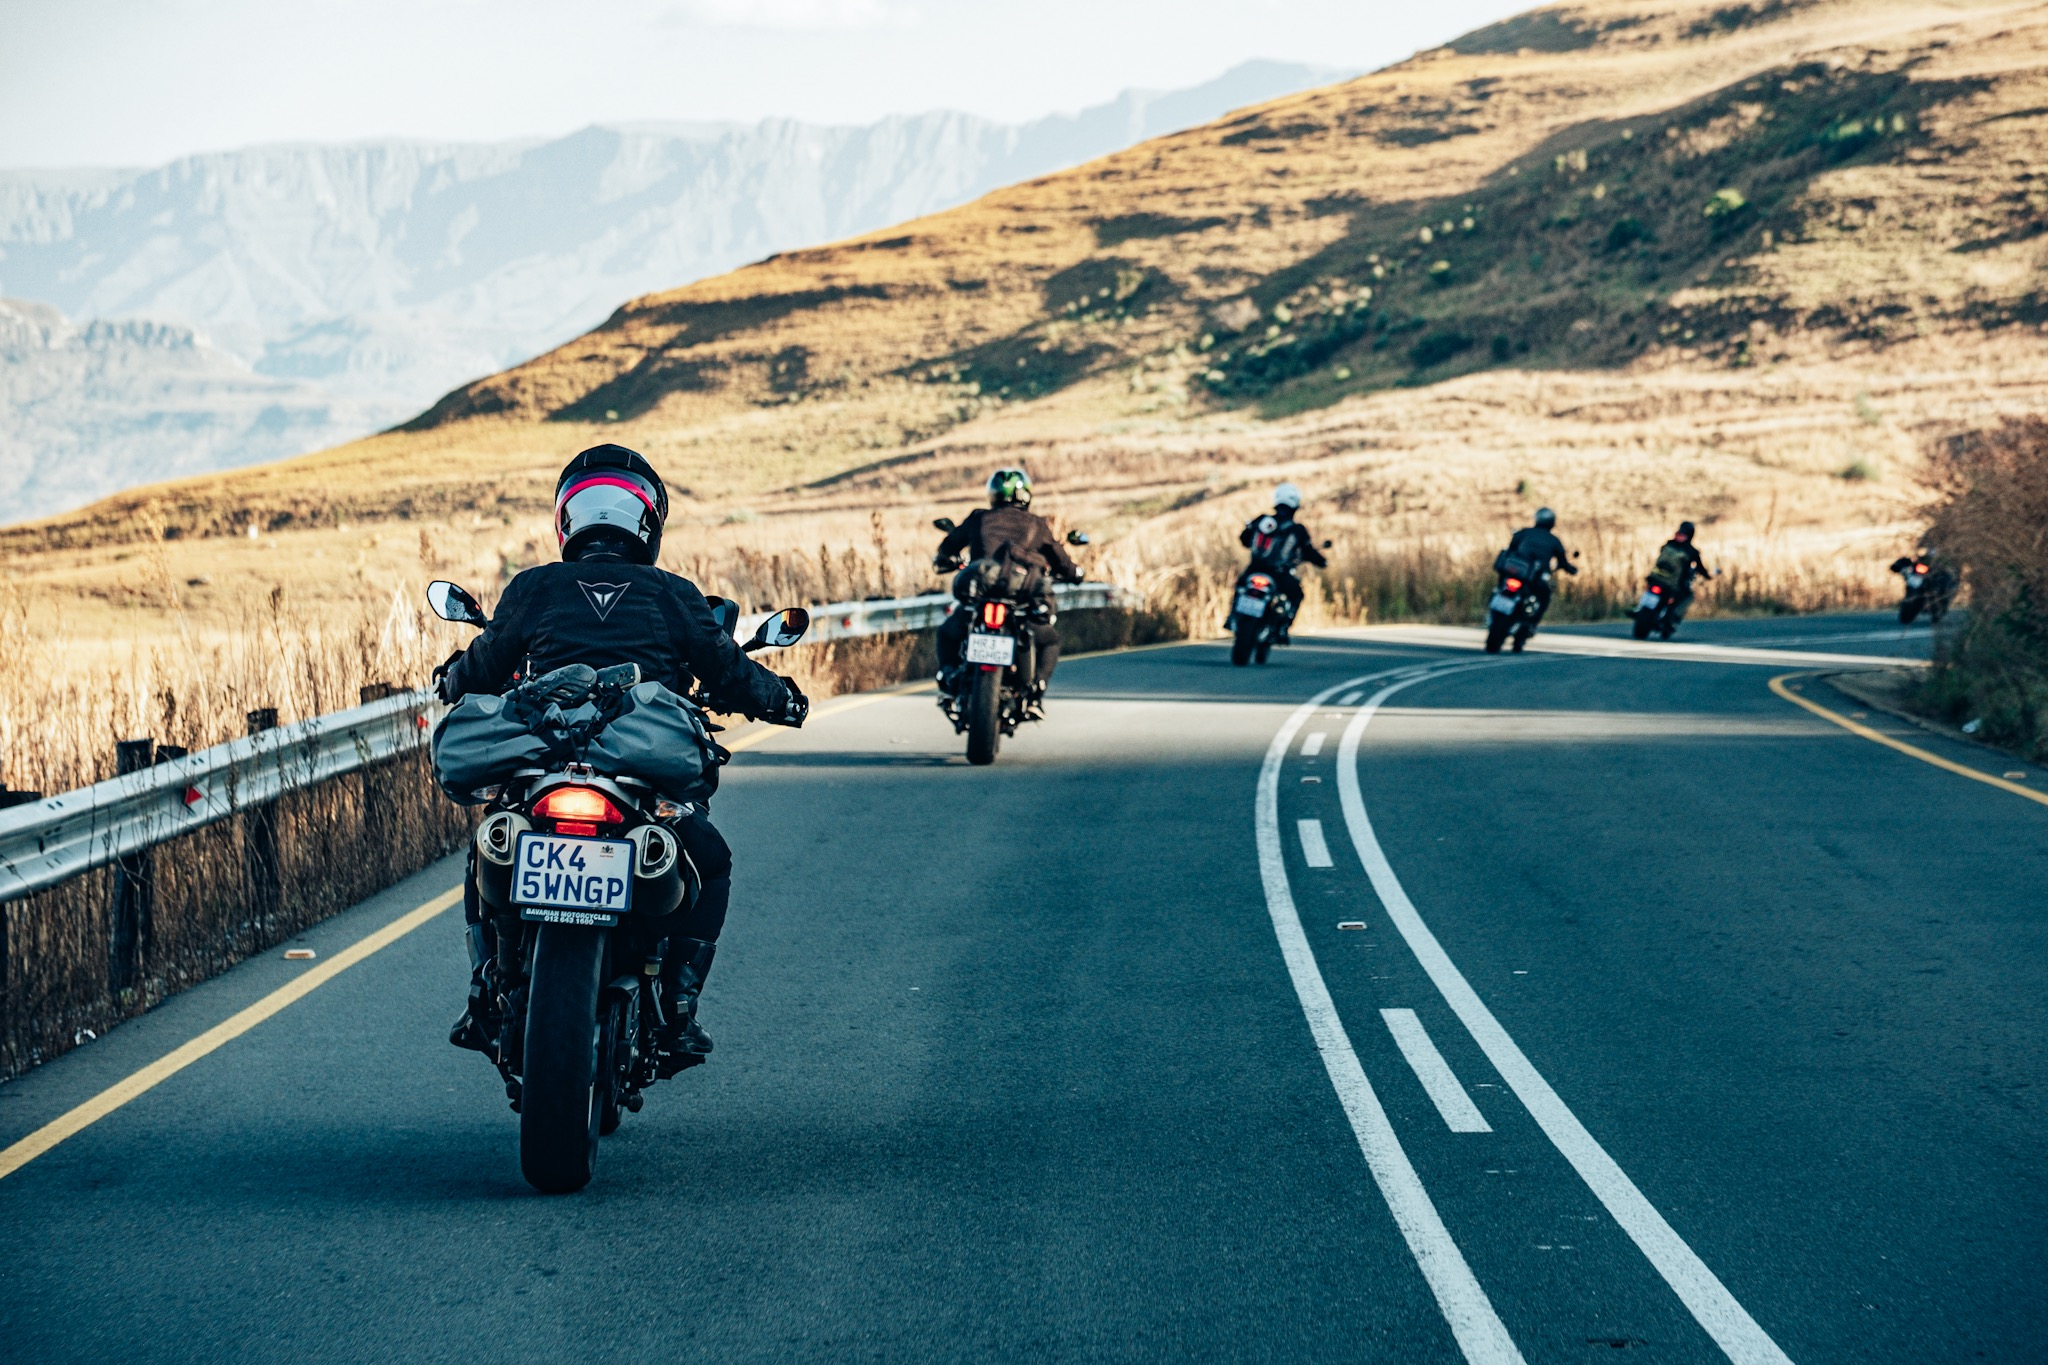 The group rolling through the winding roads just outside of Amphitheatre Backpackers in Bergville.